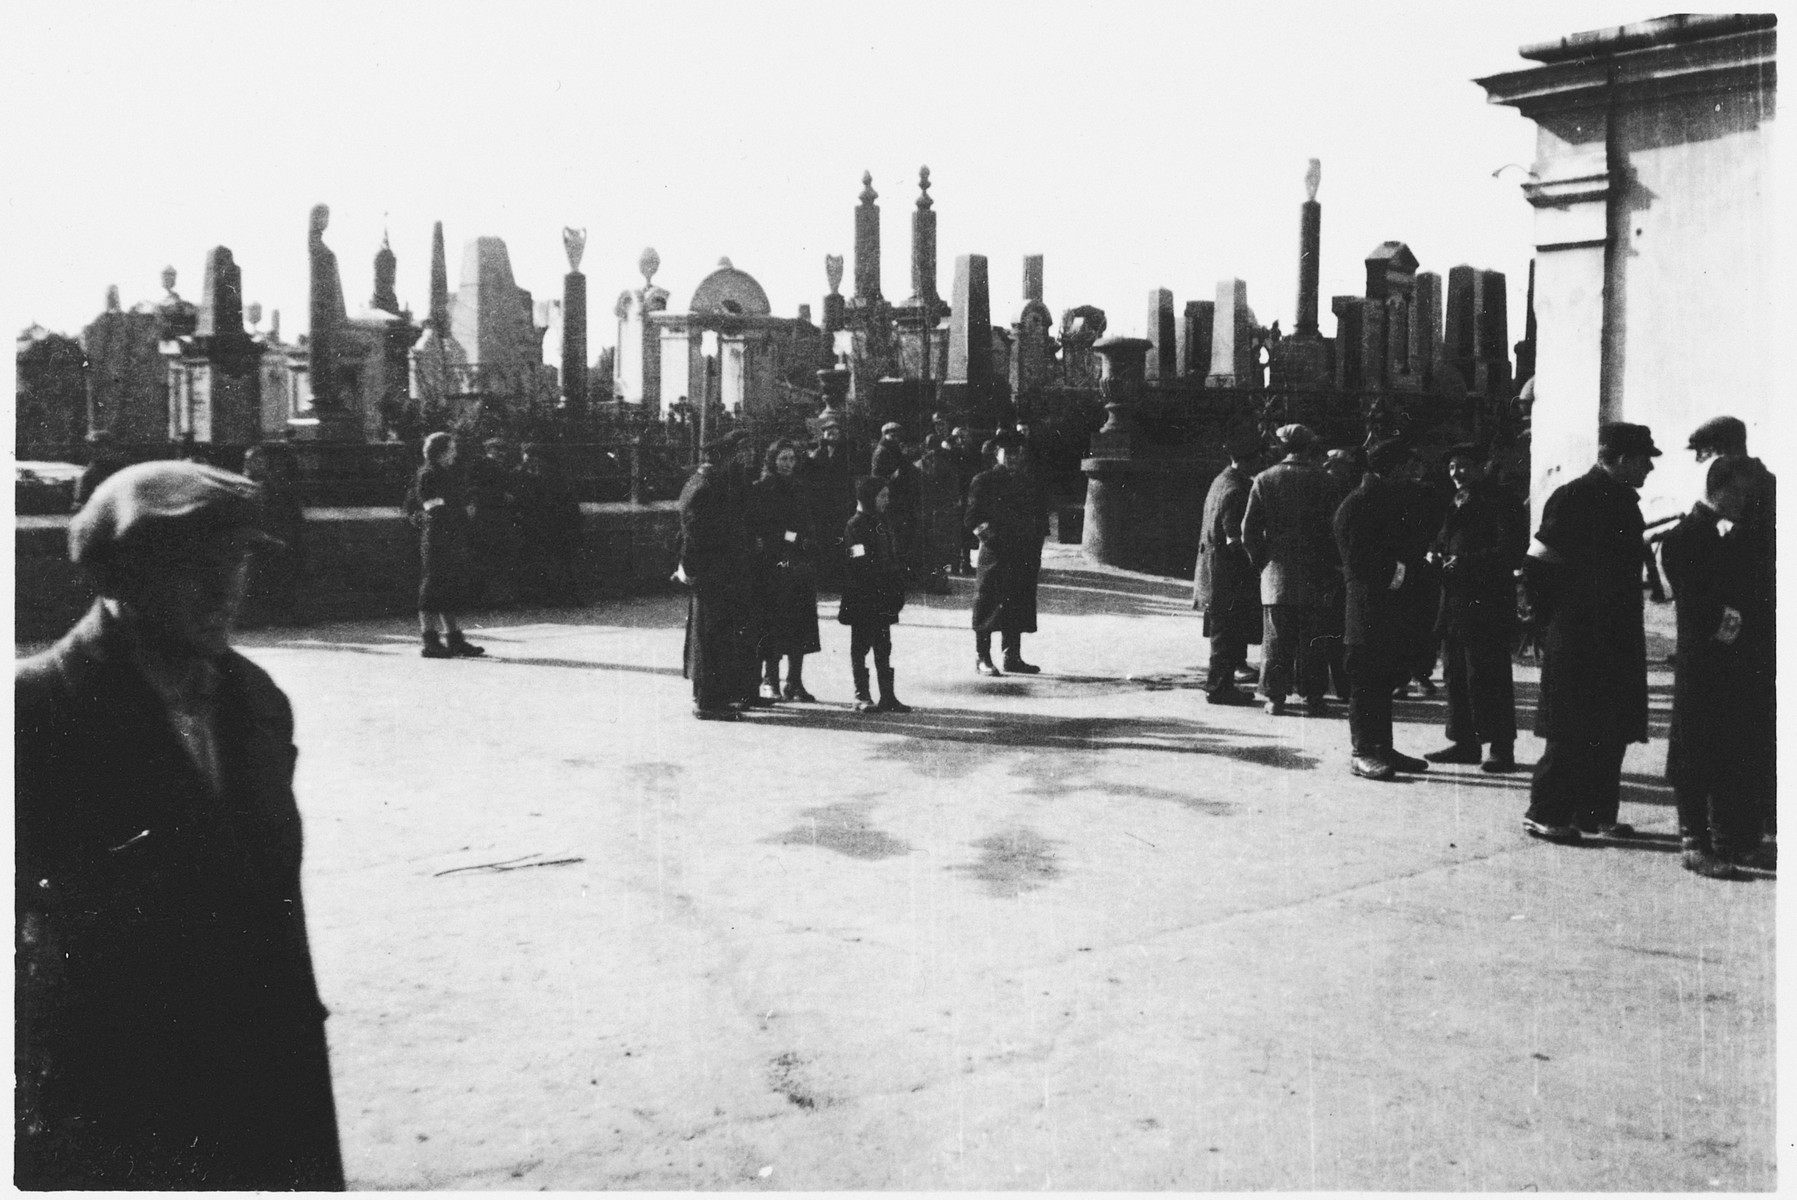 Jews from the Warsaw ghetto congregate at the entrance to the cemetery.